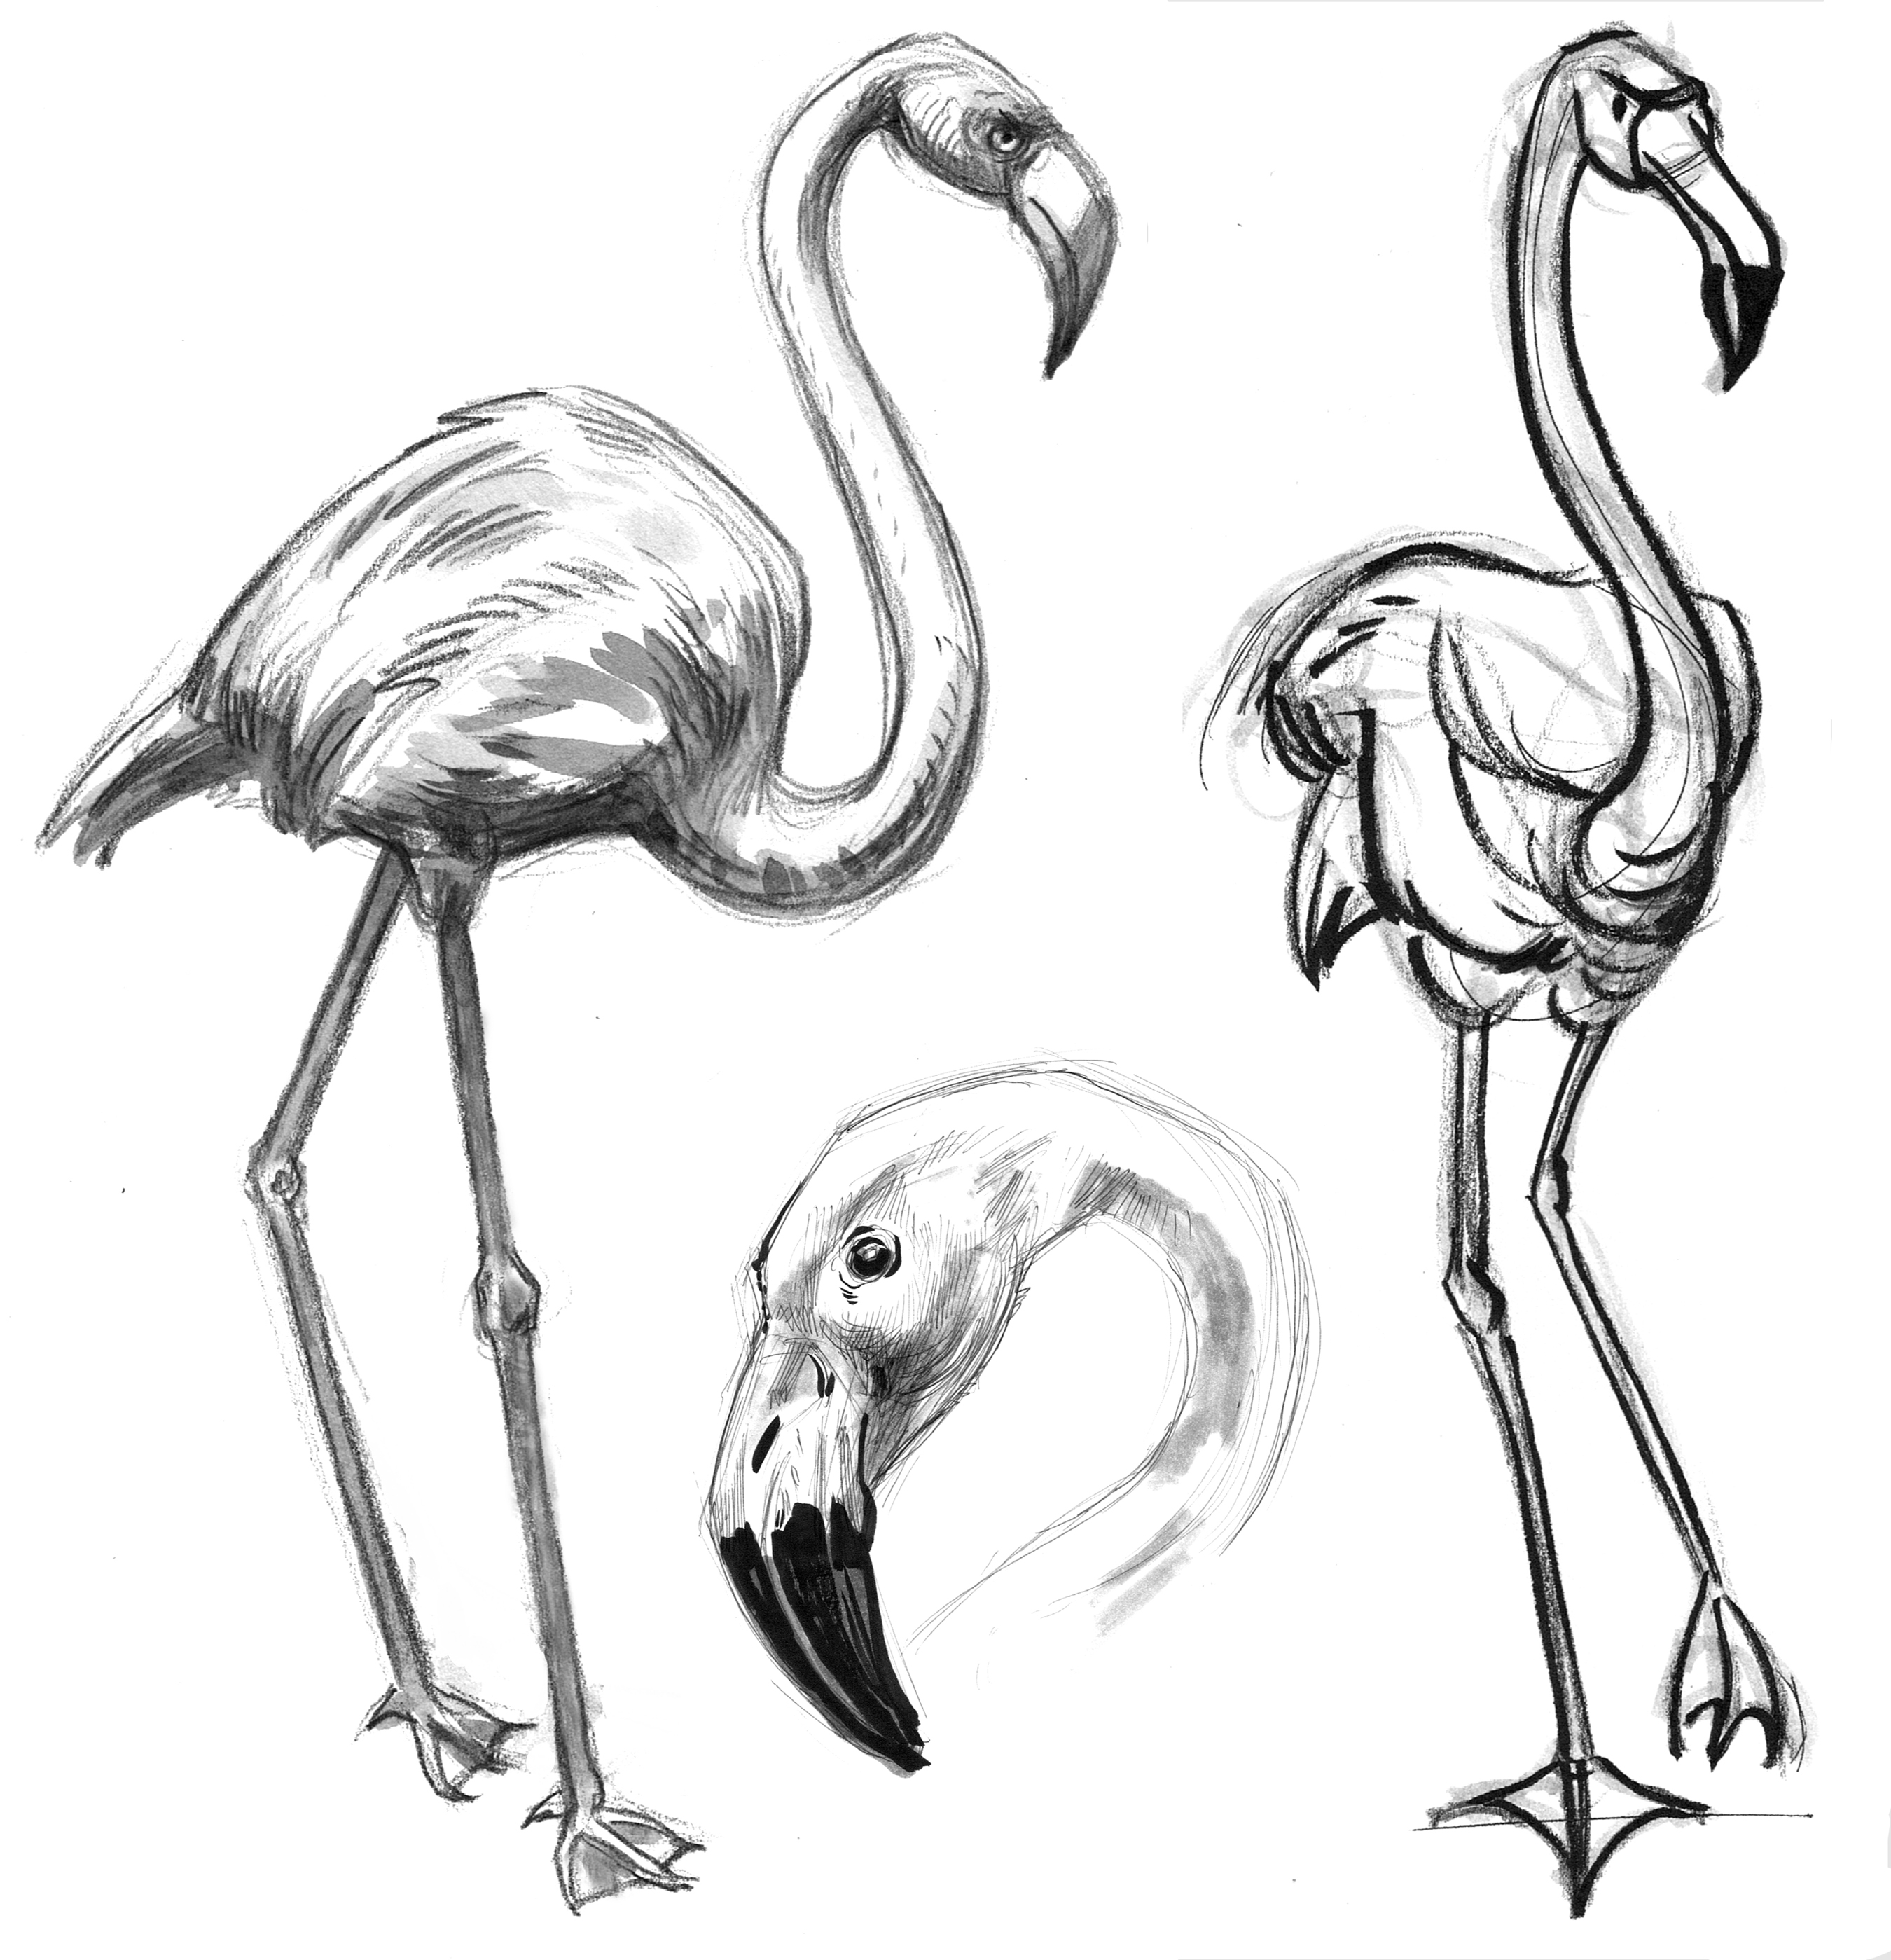 Bird Flamingo 2 & Head